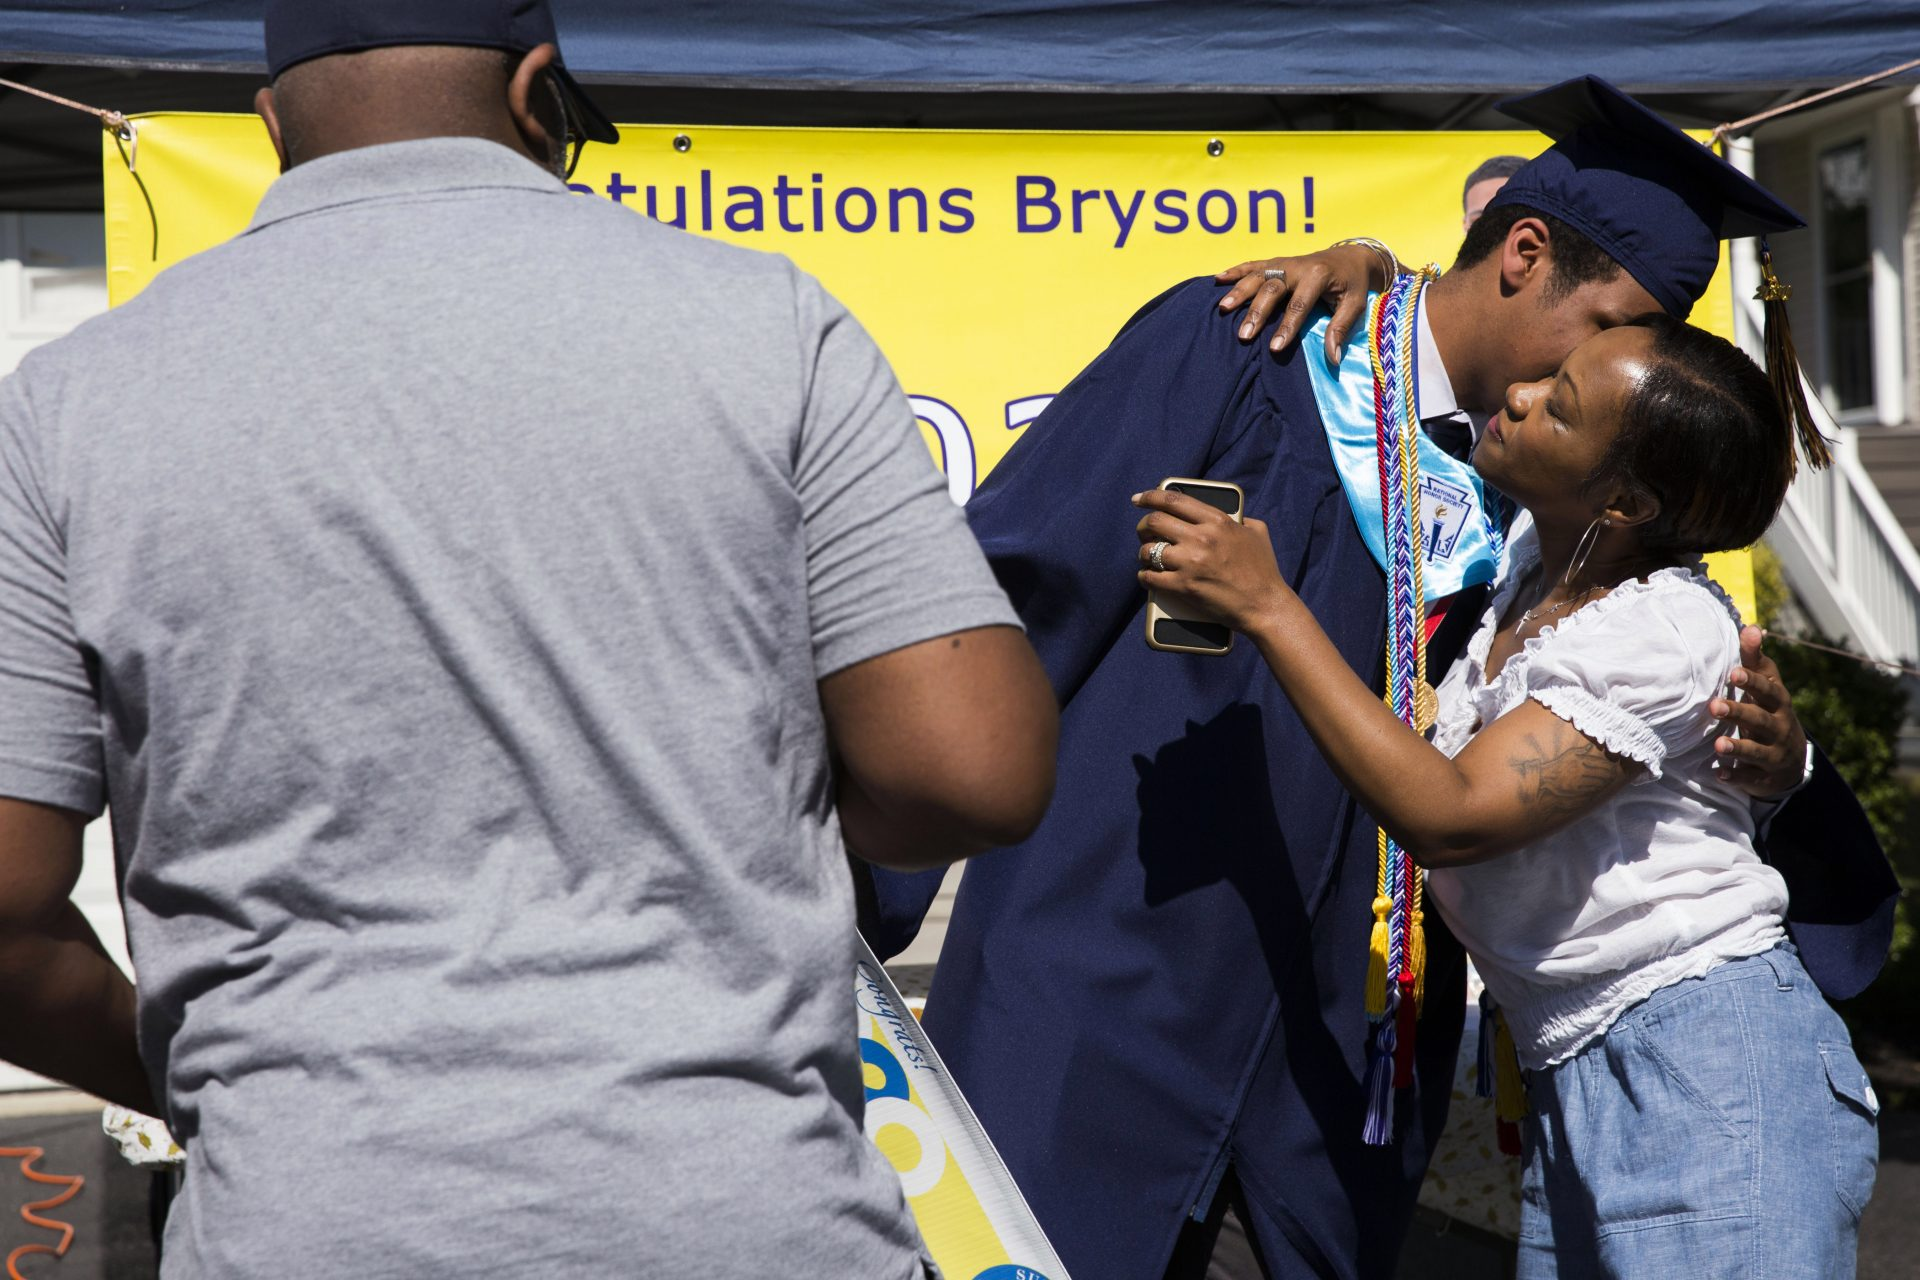 Bryson Eldridge (center) receives congratulations from his parents, Elaina and Greg, after receiving his high school diploma via a modified graduation ceremony on June 9, 2020.